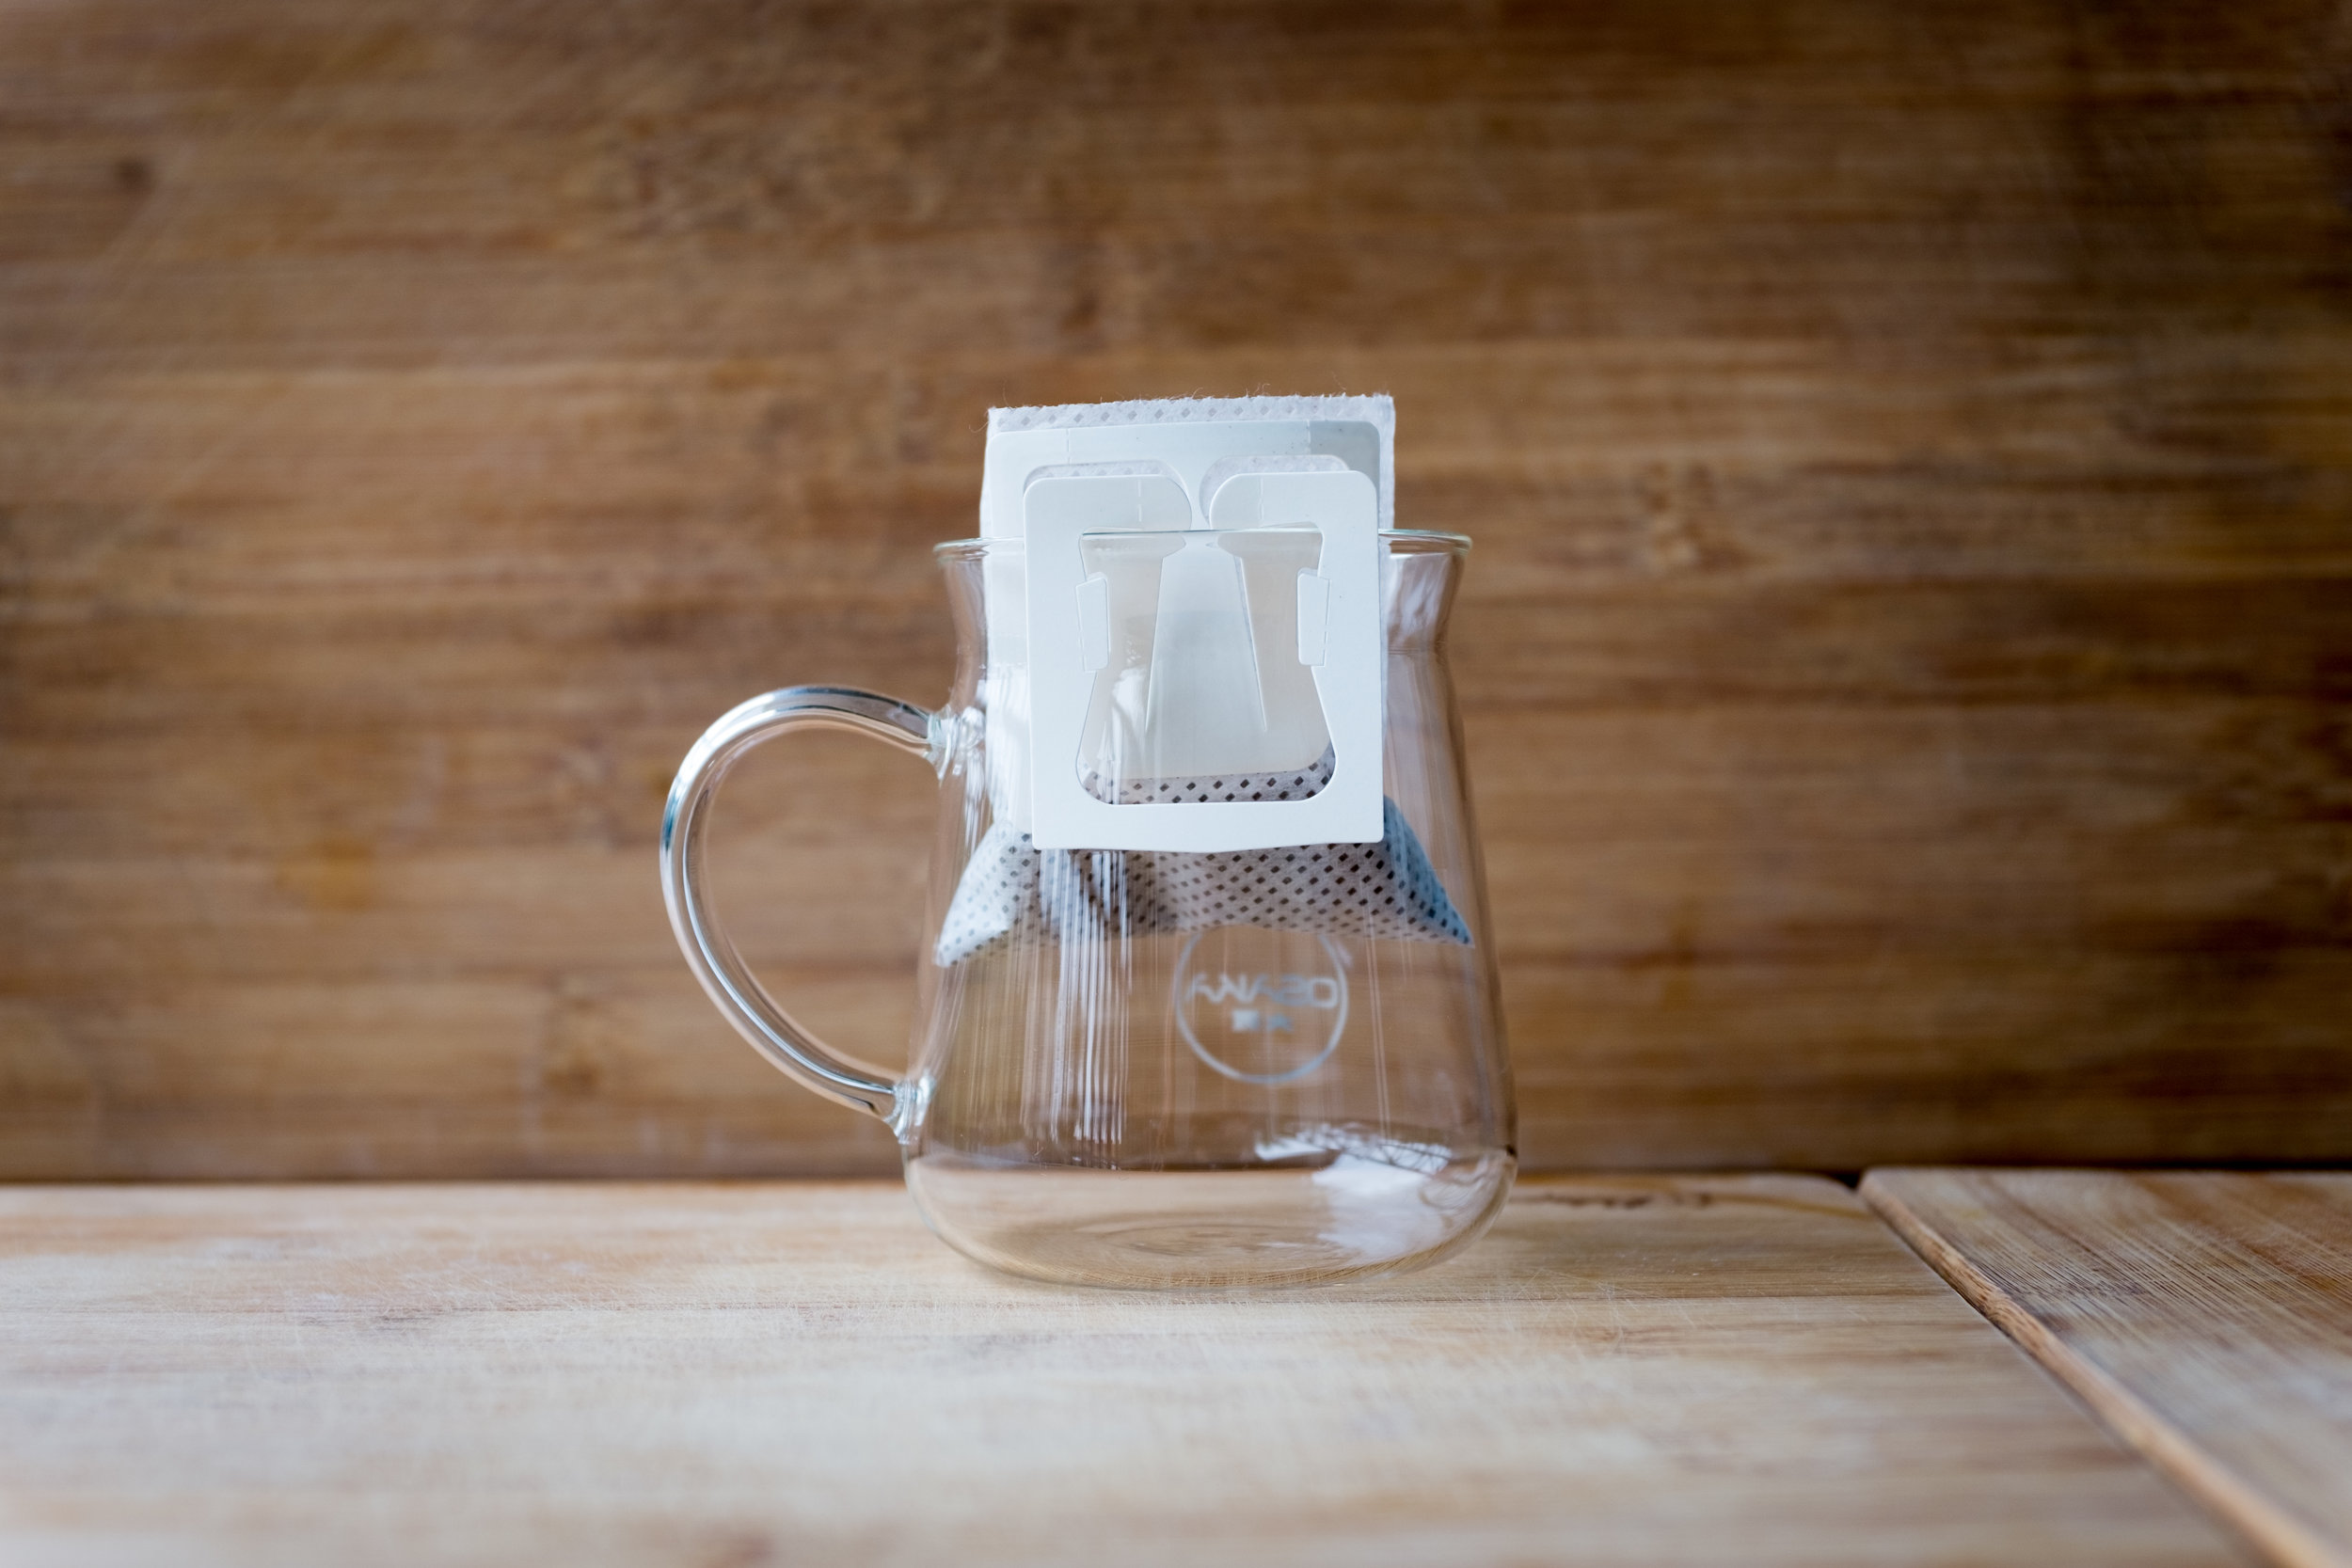 kipsy-drip-bag-pourover-coffee-filter-pouch-1